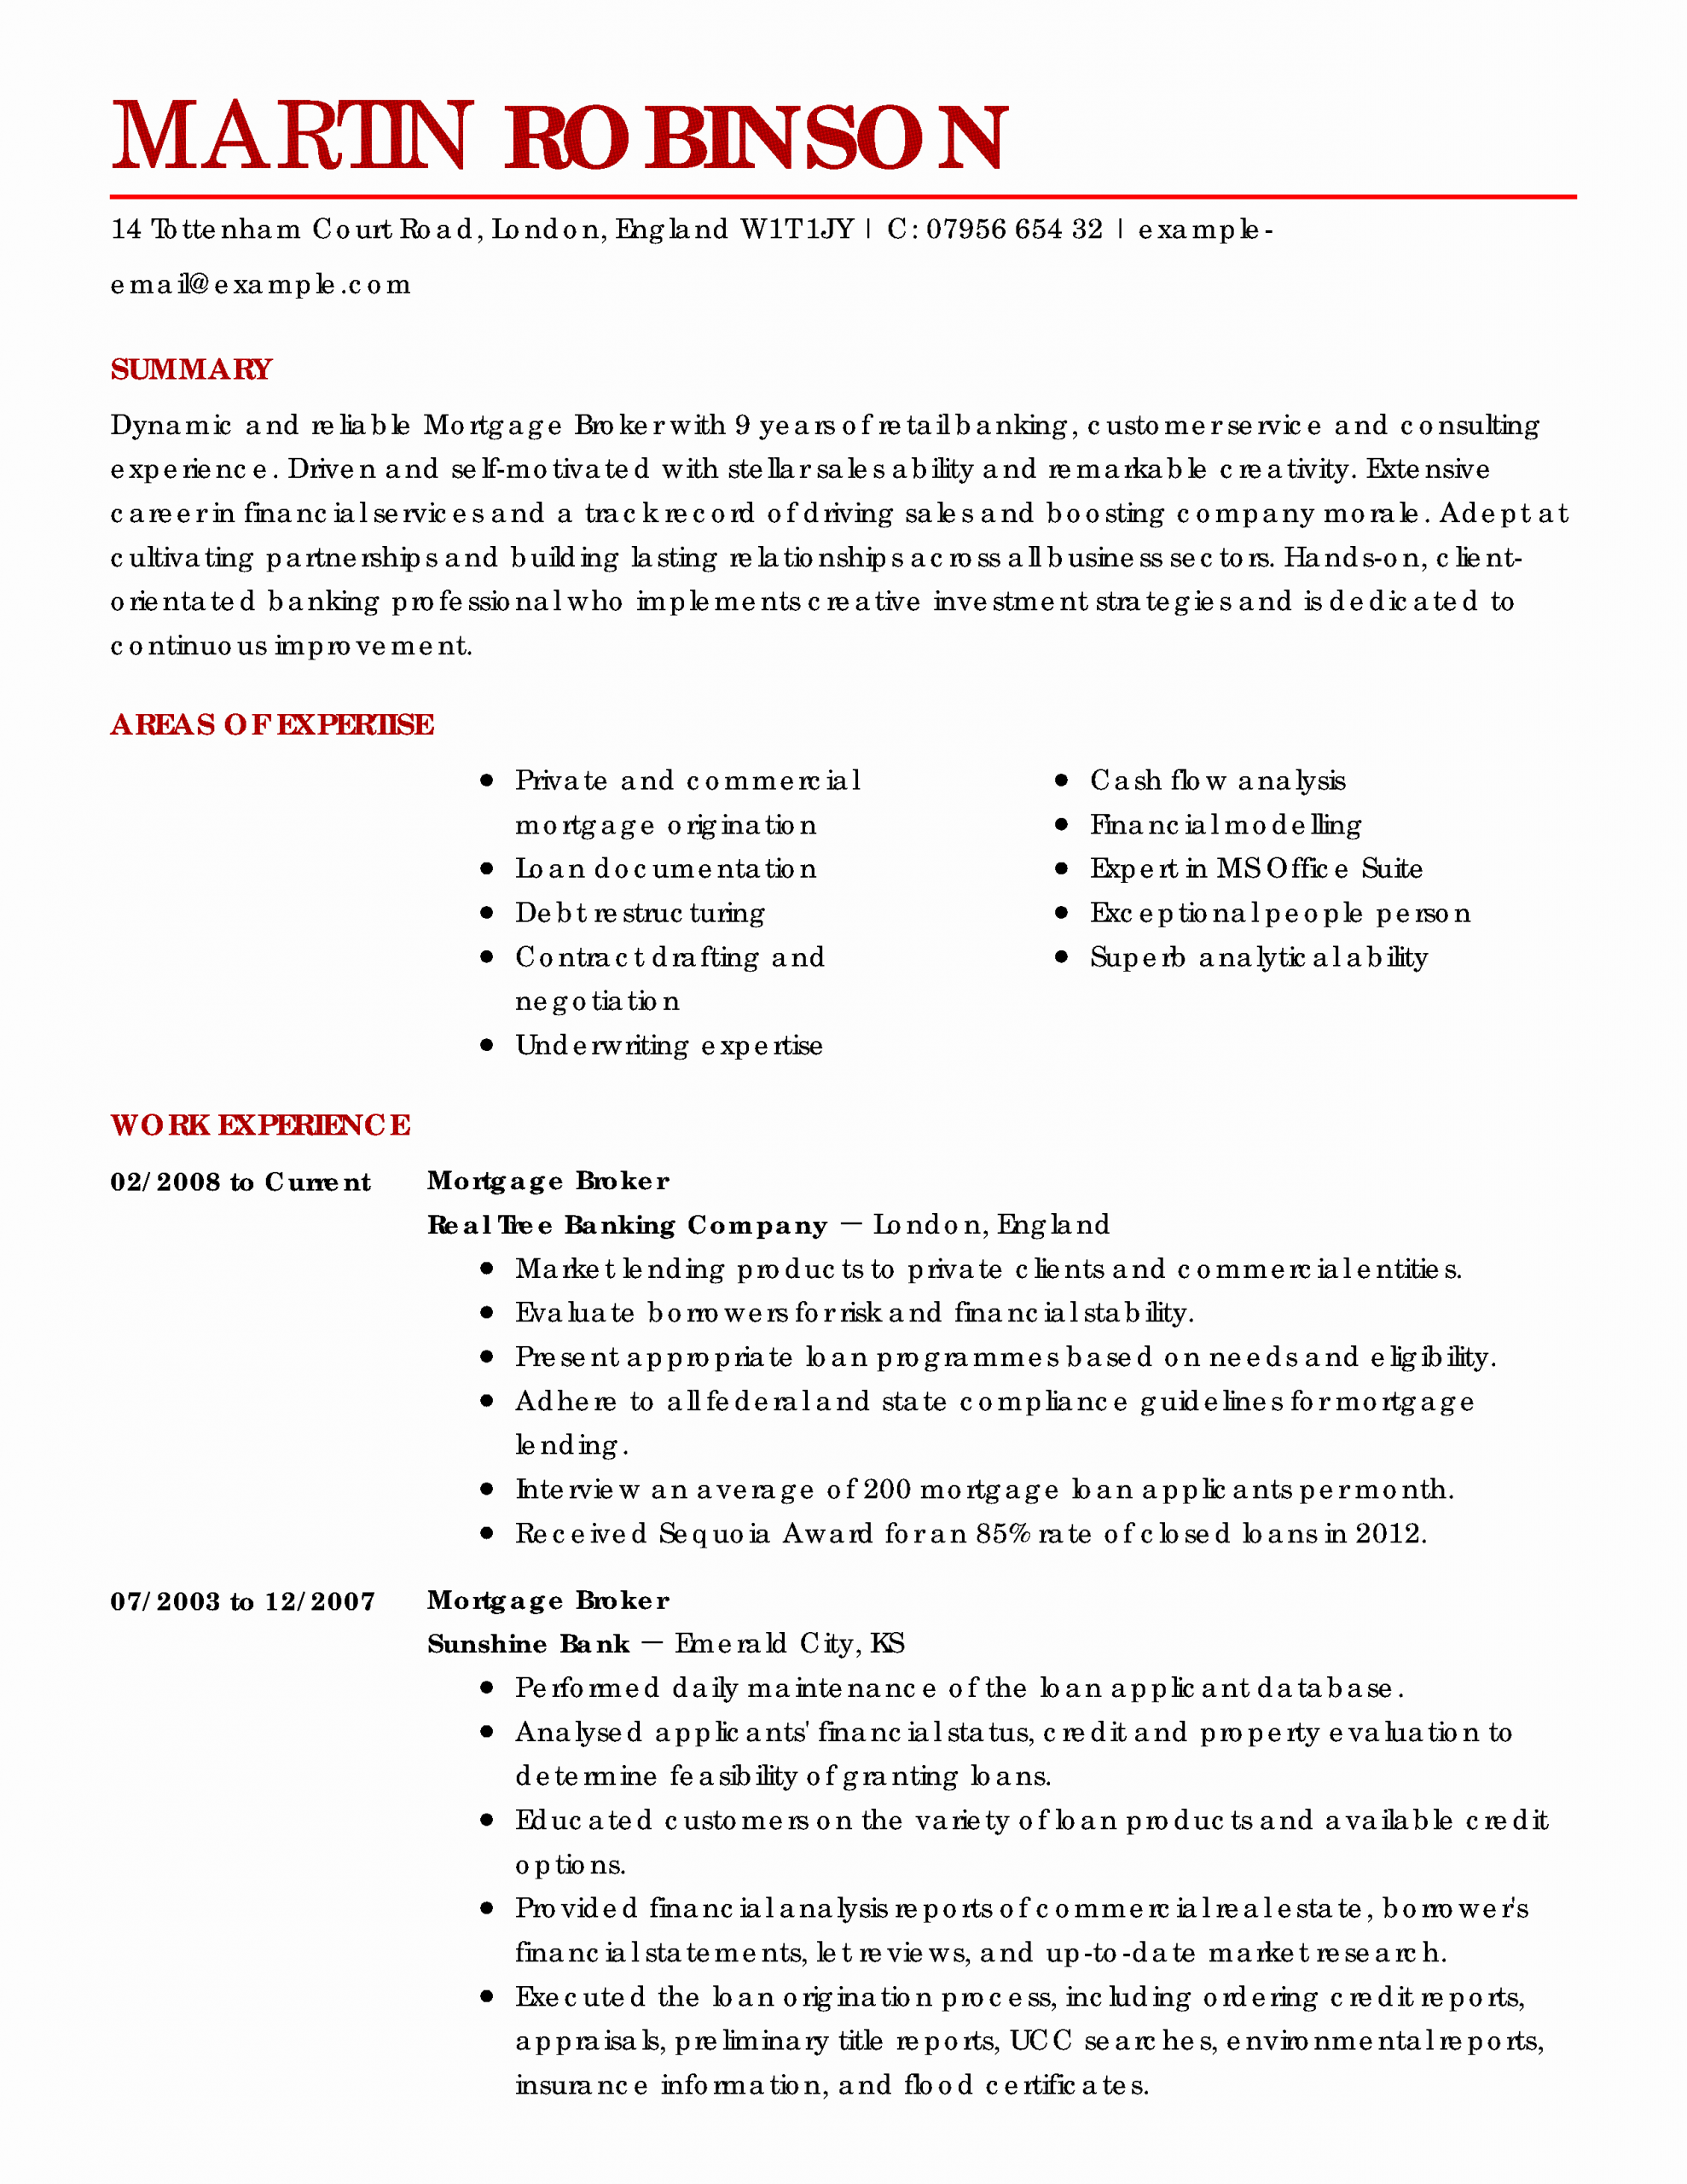 23 Real Estate Agent Resume Example In 2020 Resume Examples